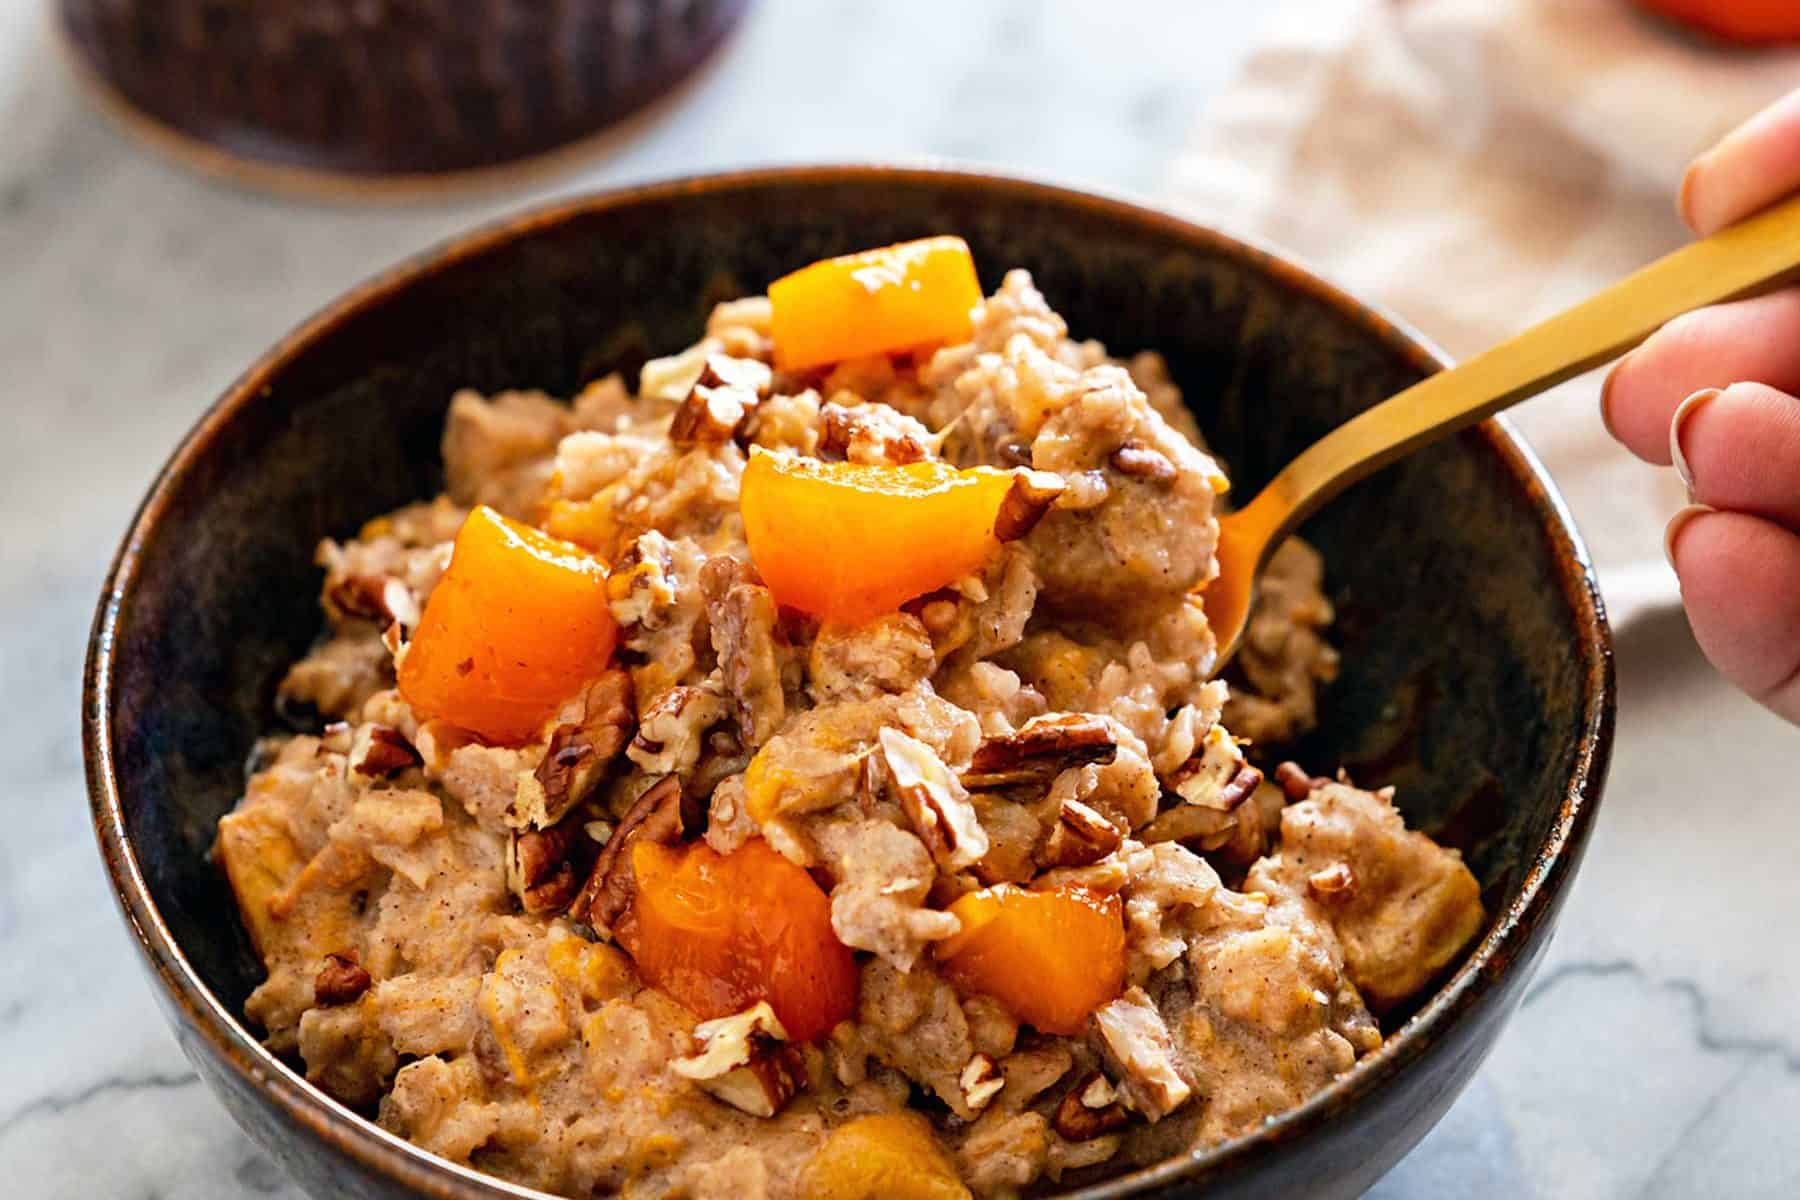 Ceramic bowl filled with persimmon oatmeal, and golden spoon, with a cup of coffee